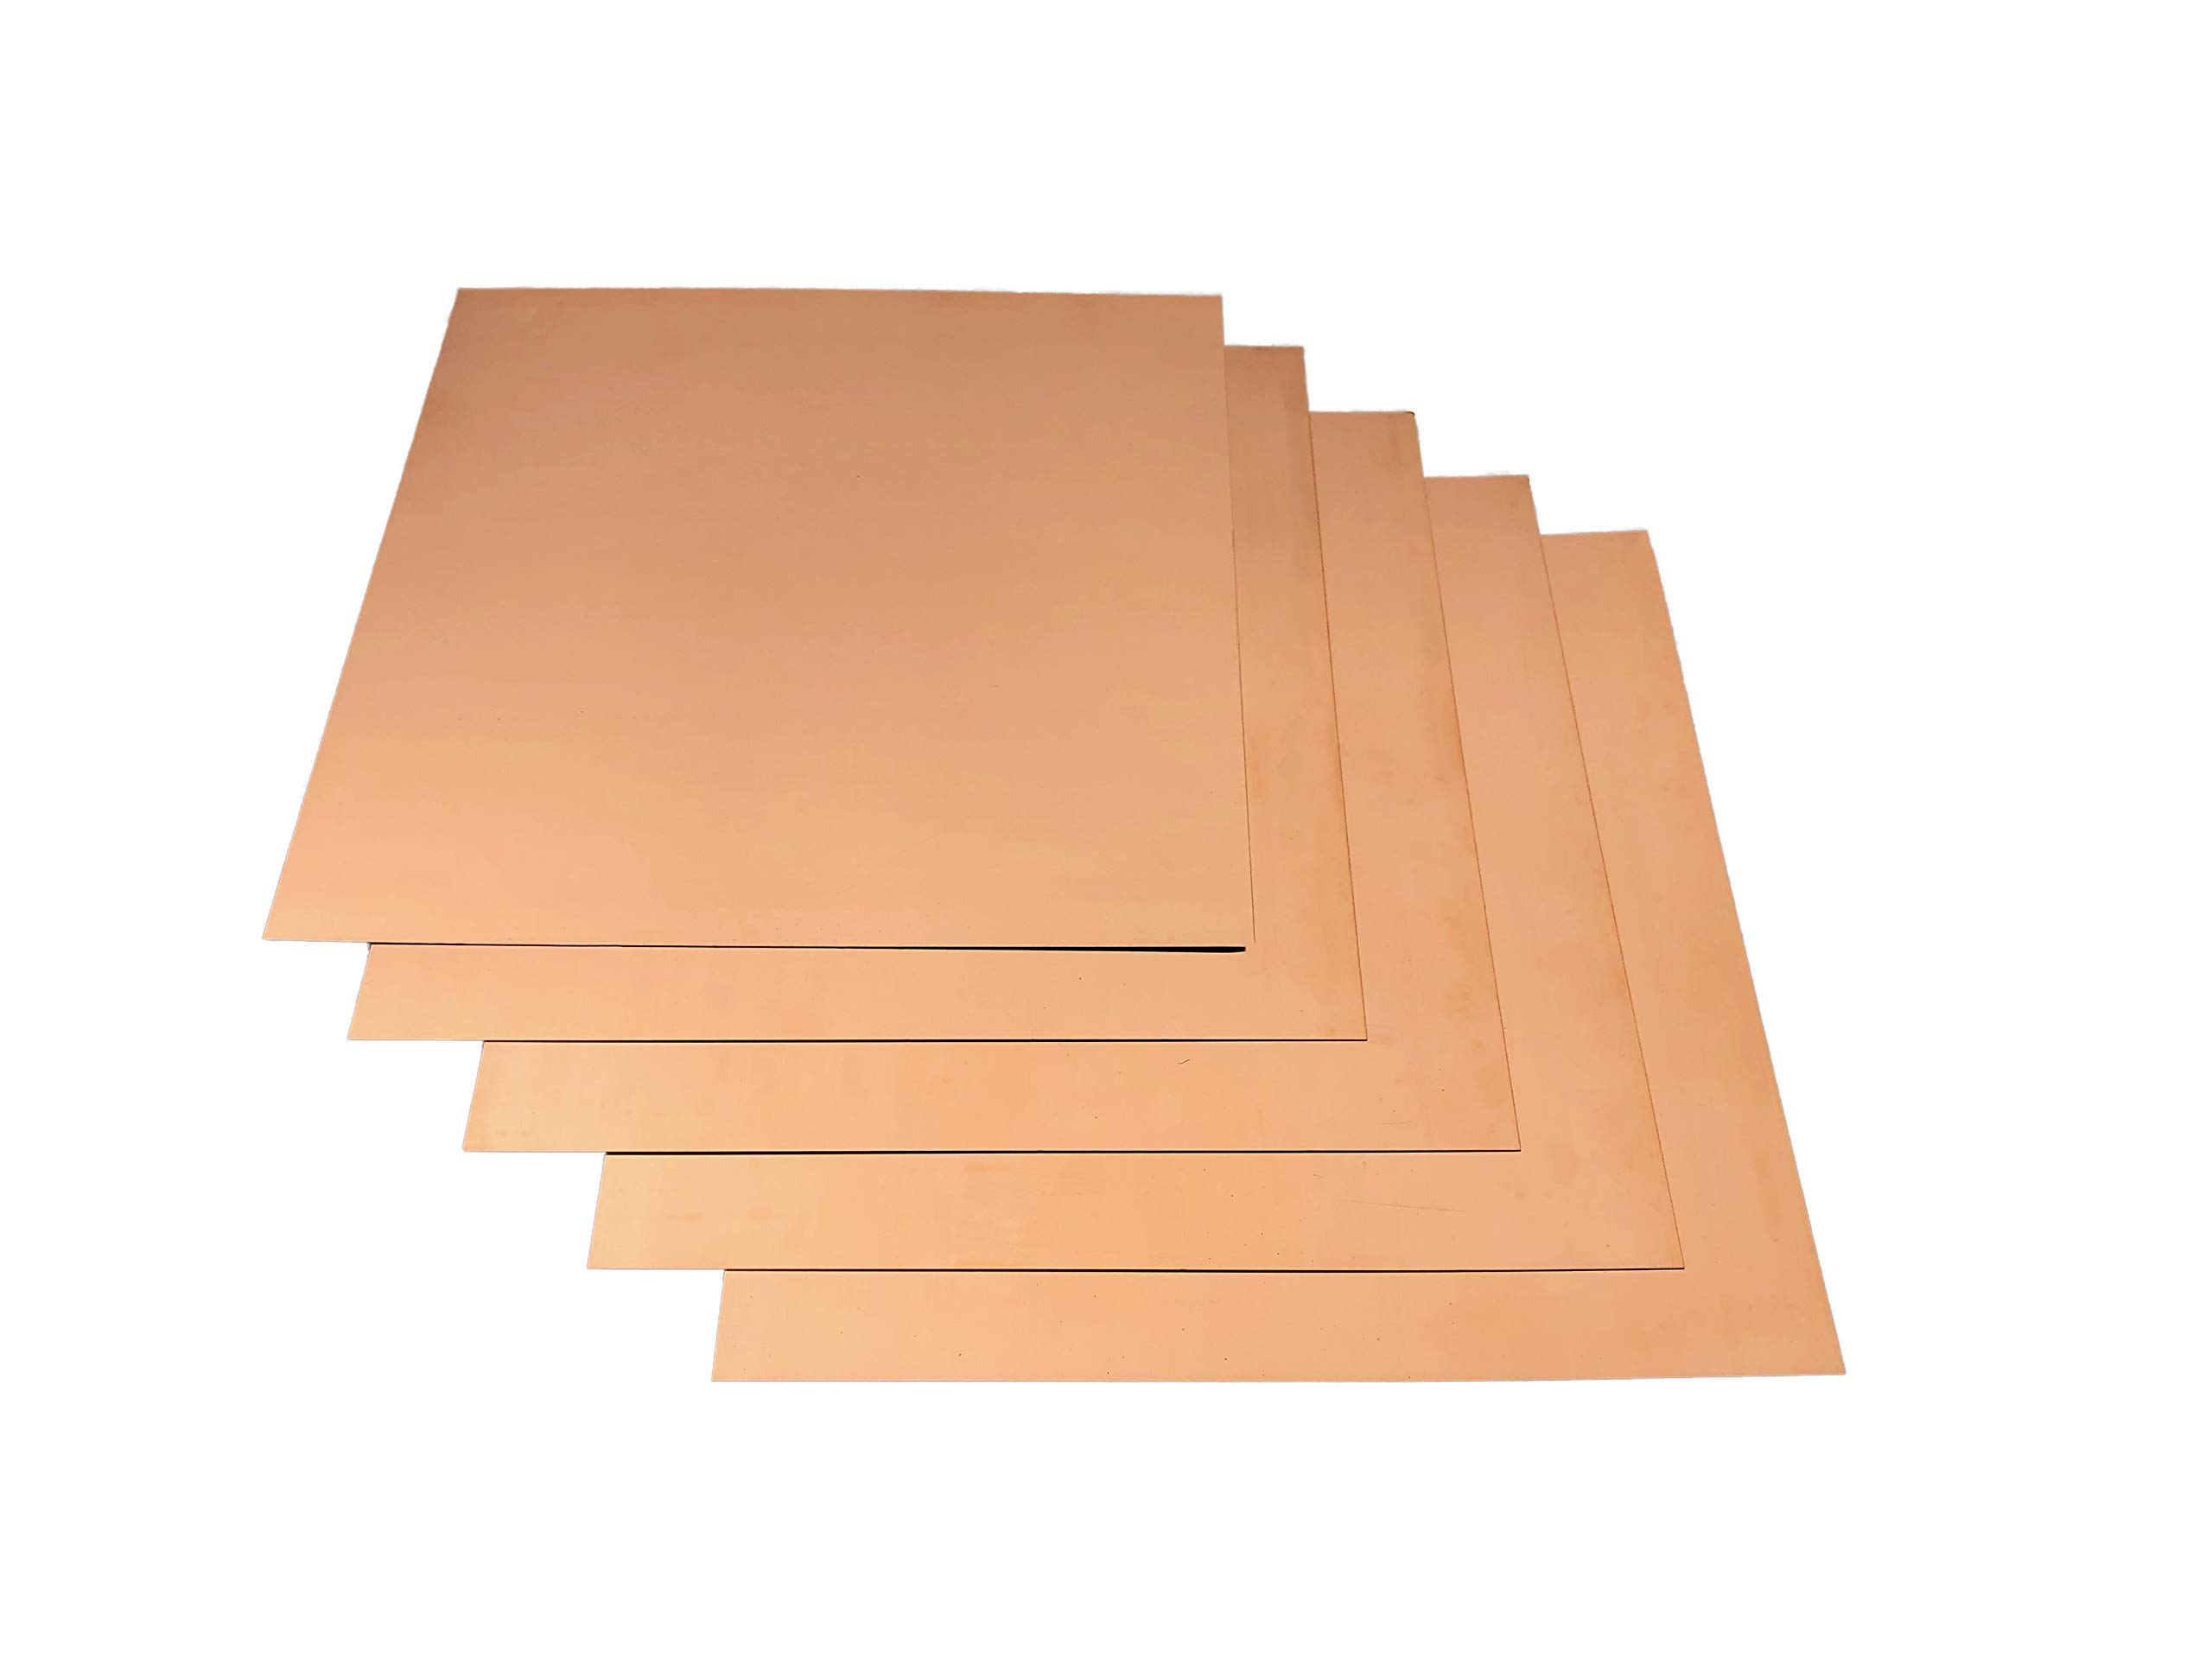 12''x12'' Copper Sheet Metal - Lead Free - (2) 16 Ounce workable Copper Sheets for Jewelry, Crafts, Repairs, Enameling, Electrical by Flashing Kings